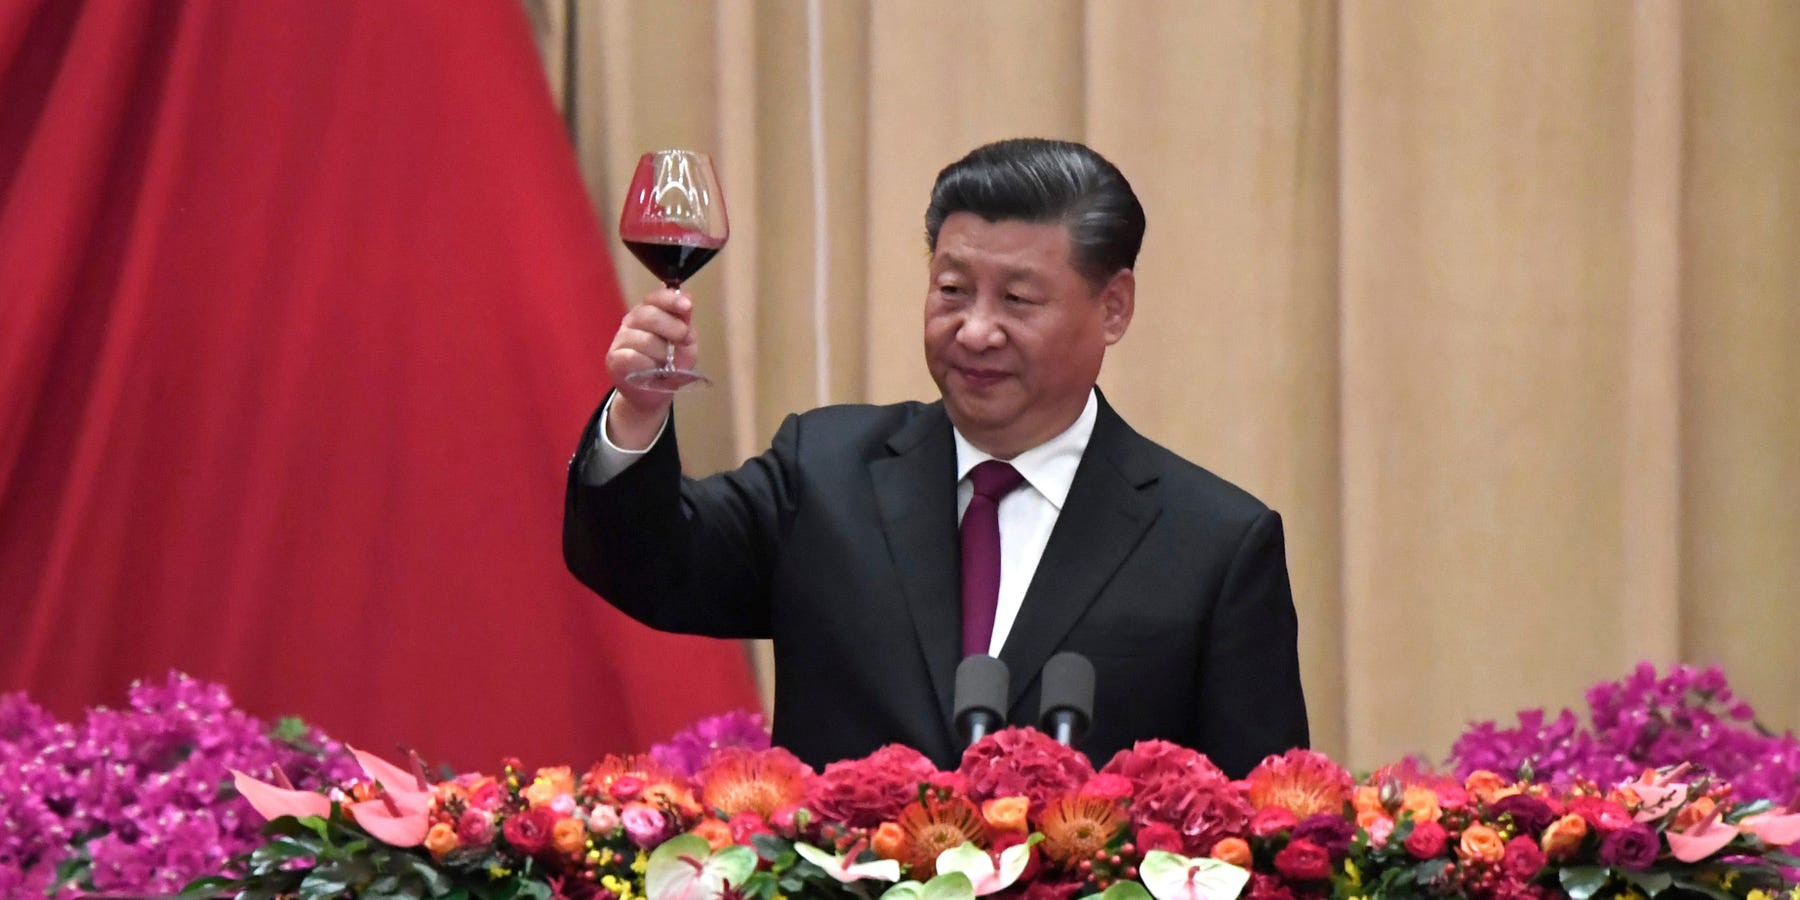 Chinese President Xi Jinping toasts at a banquet in Beijing, China, on September 30, 2019.